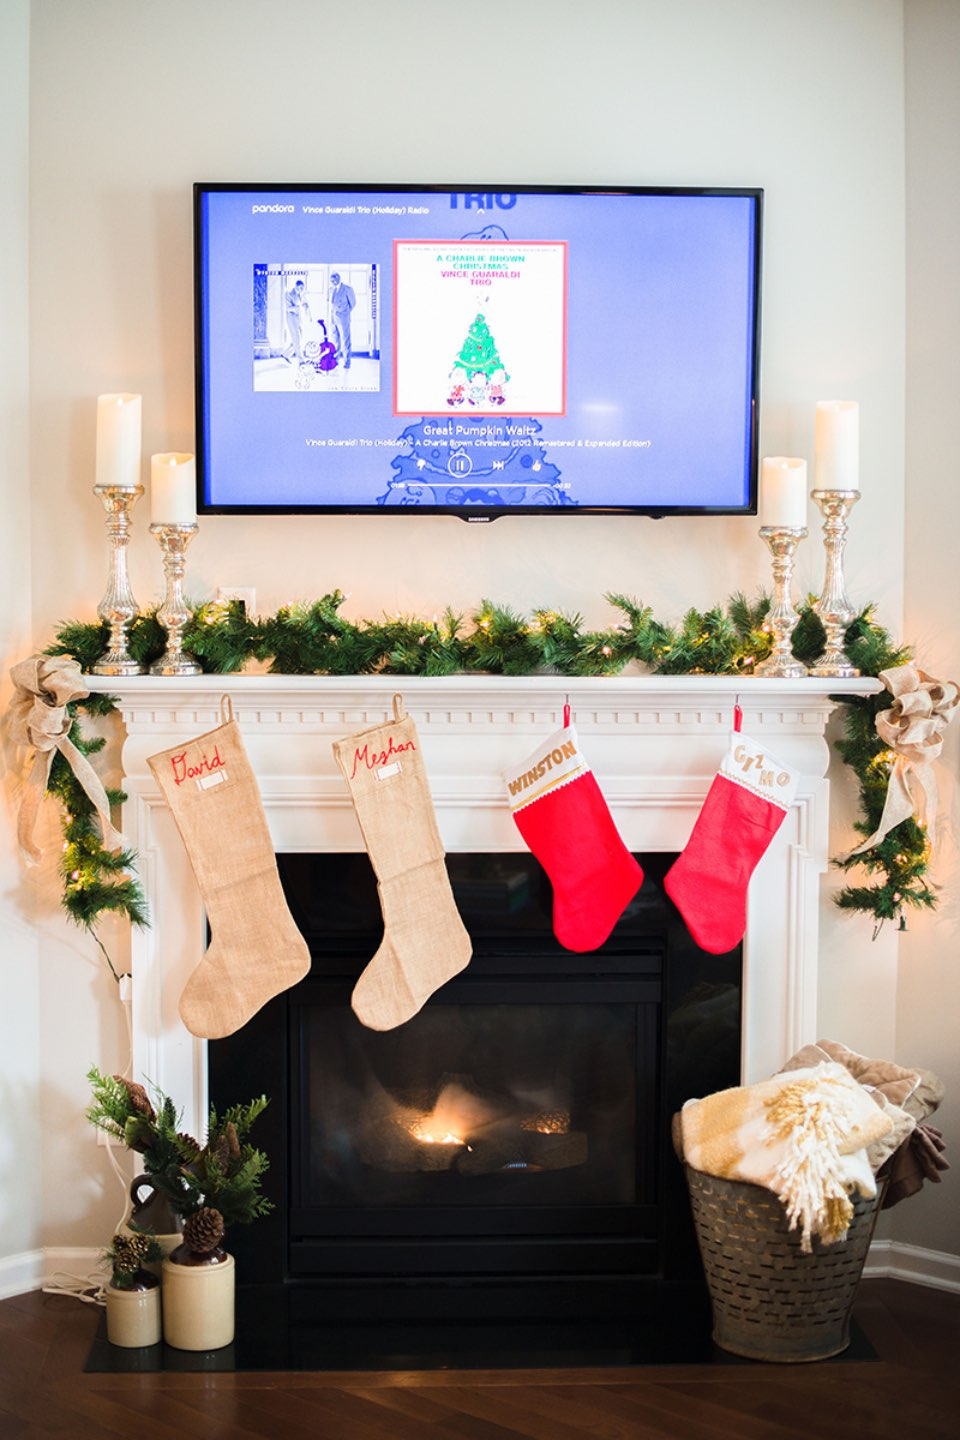 Holiday Decoration Must Haves for 2018 - I'm Fixin' To - @mbg0112